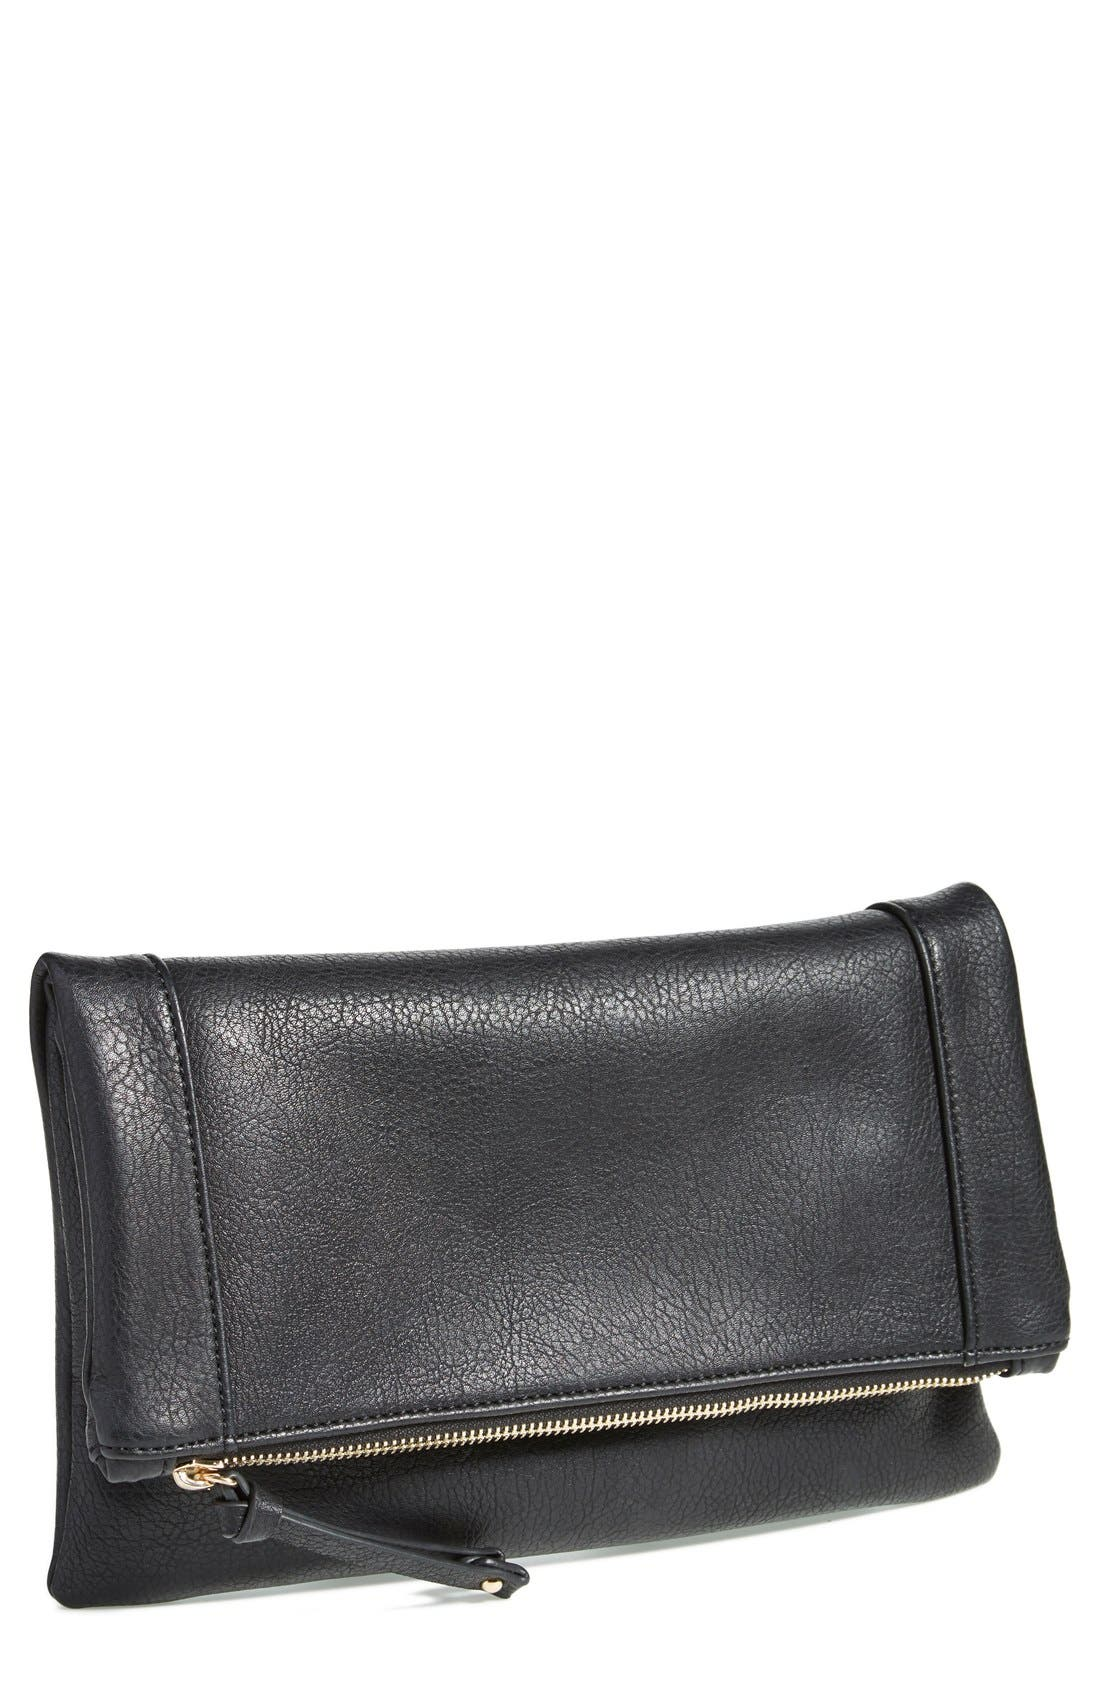 Main Image - BP. Foldover Clutch